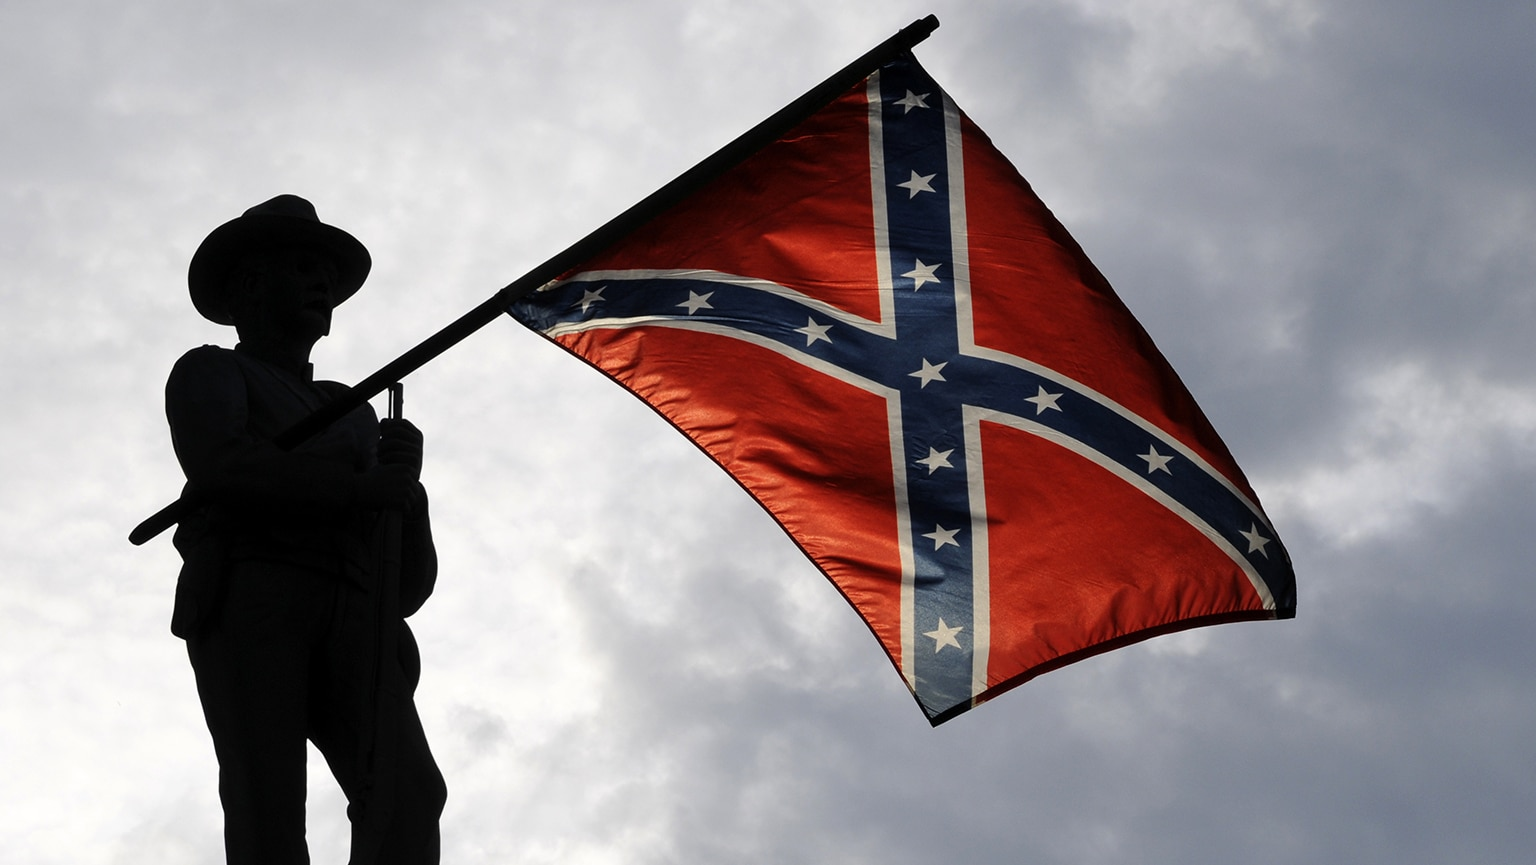 The Lower South Secedes